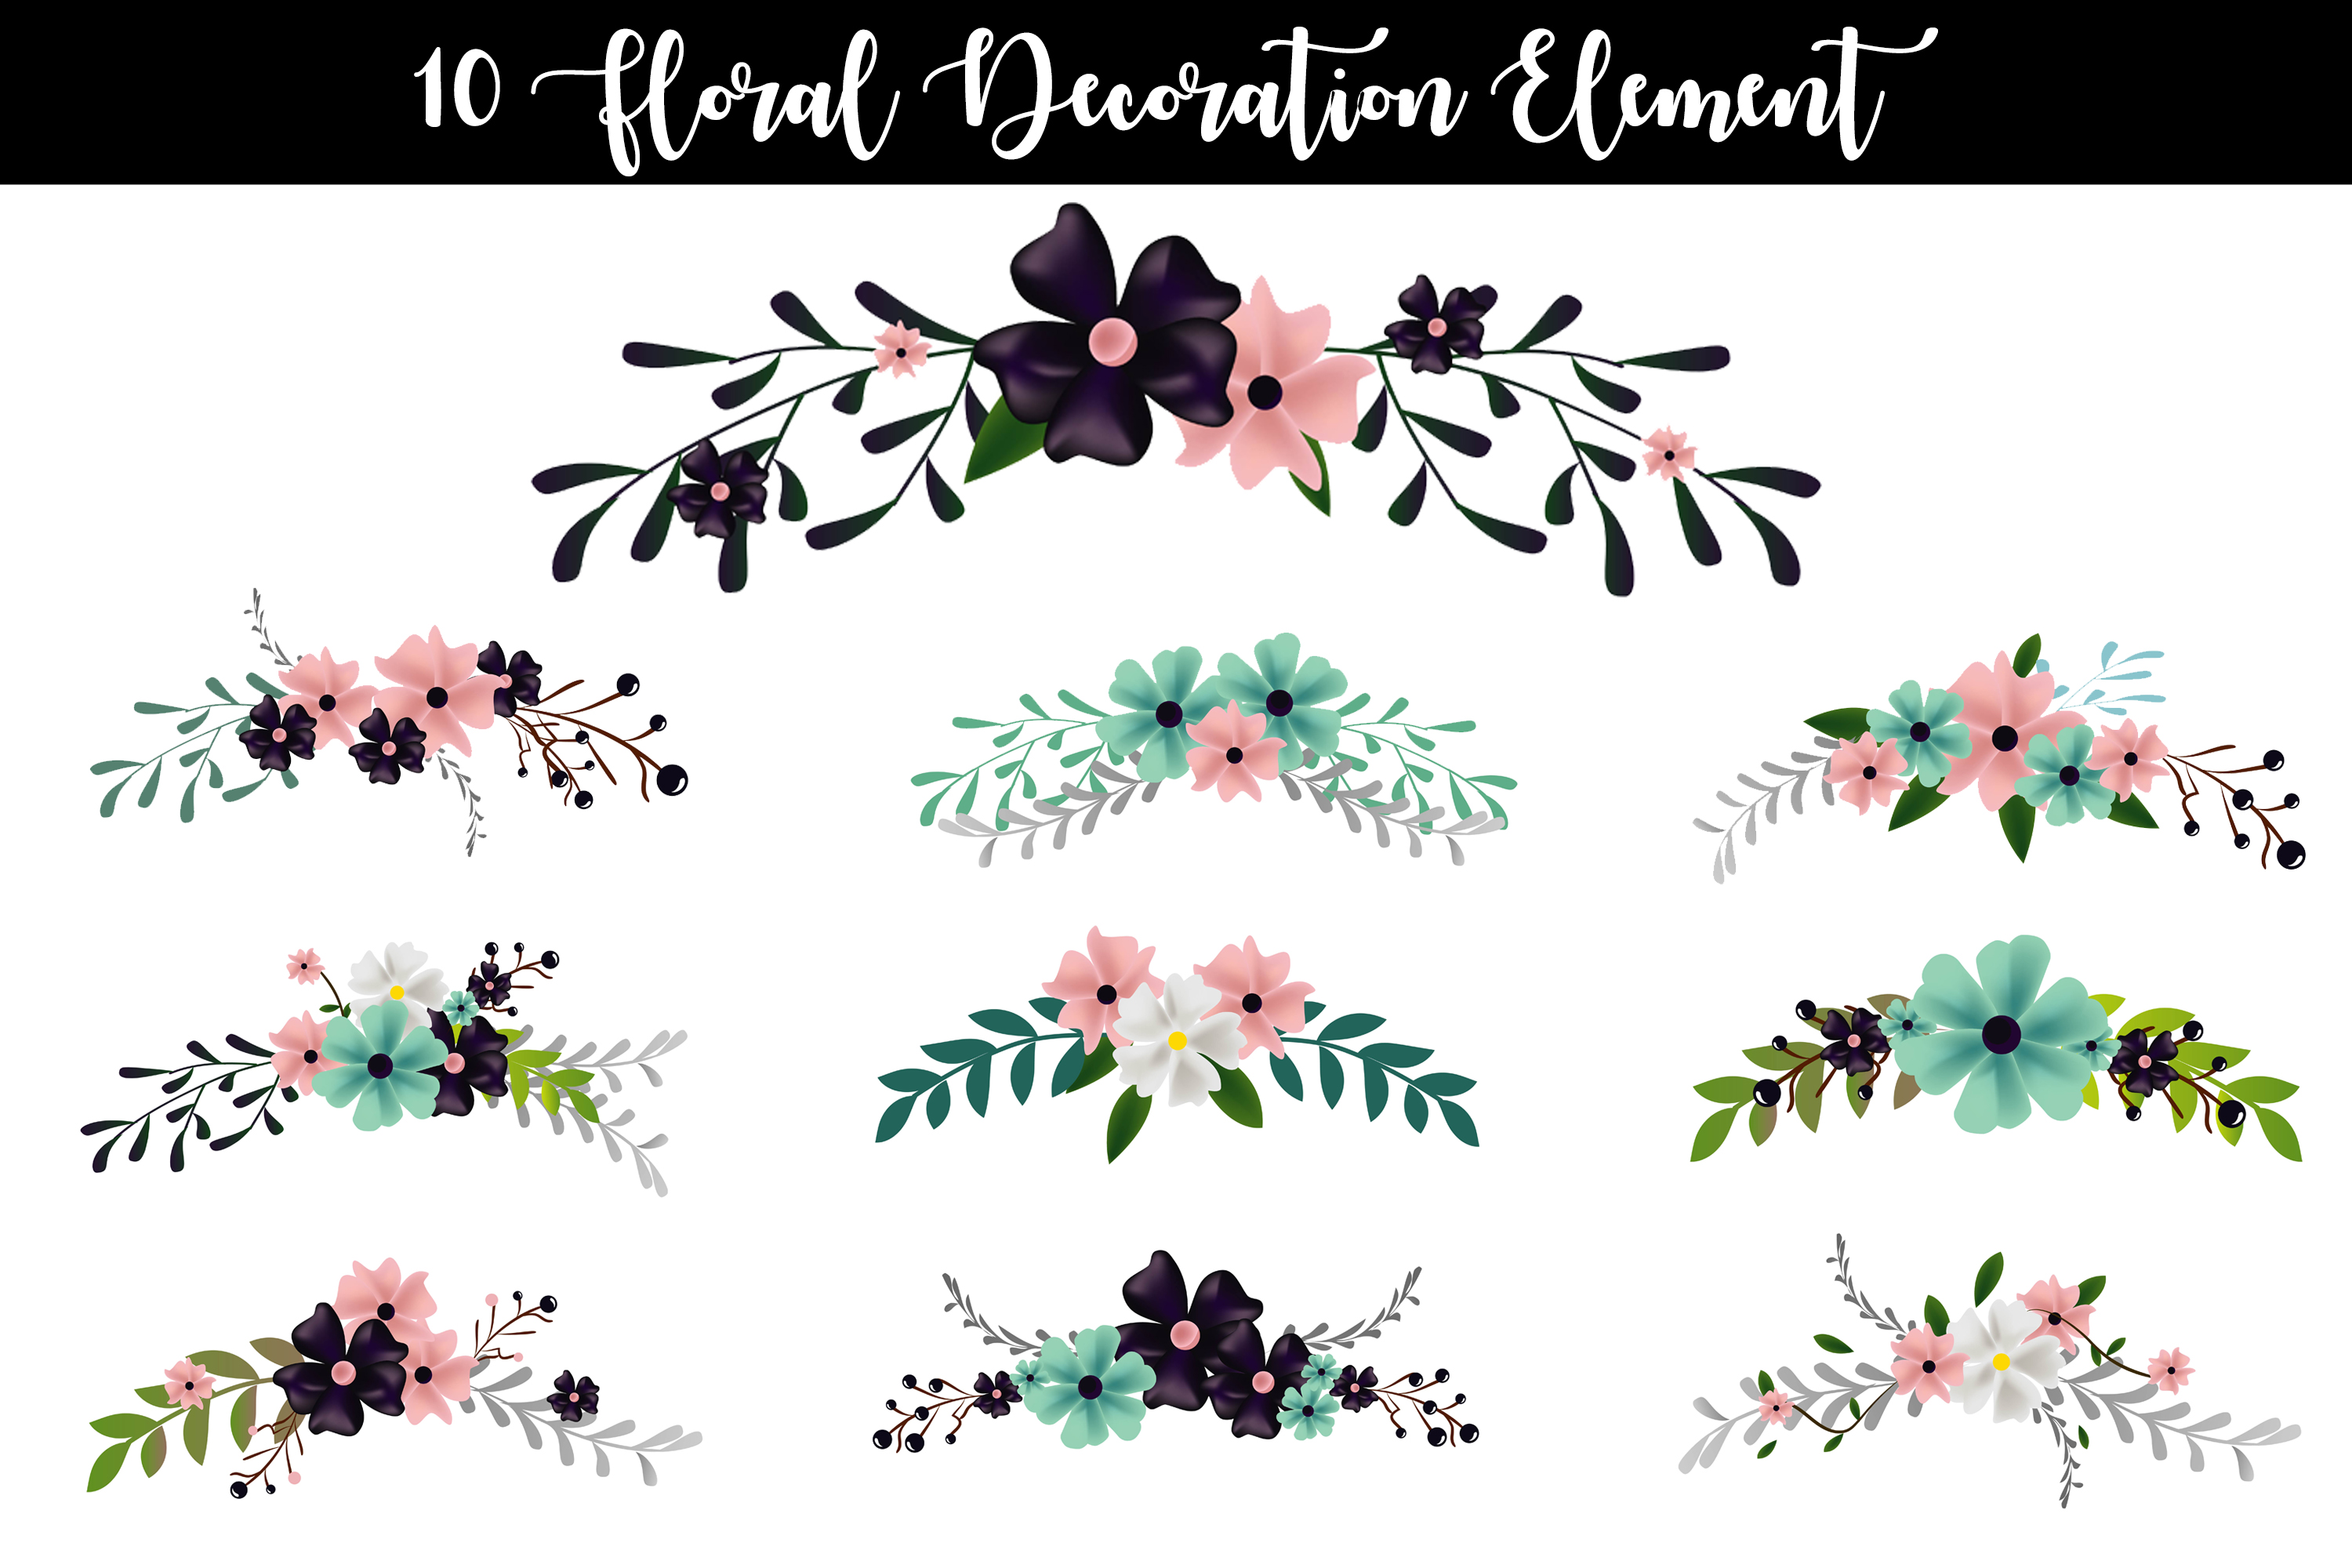 10 Floral Decoration Element Vector example image 1